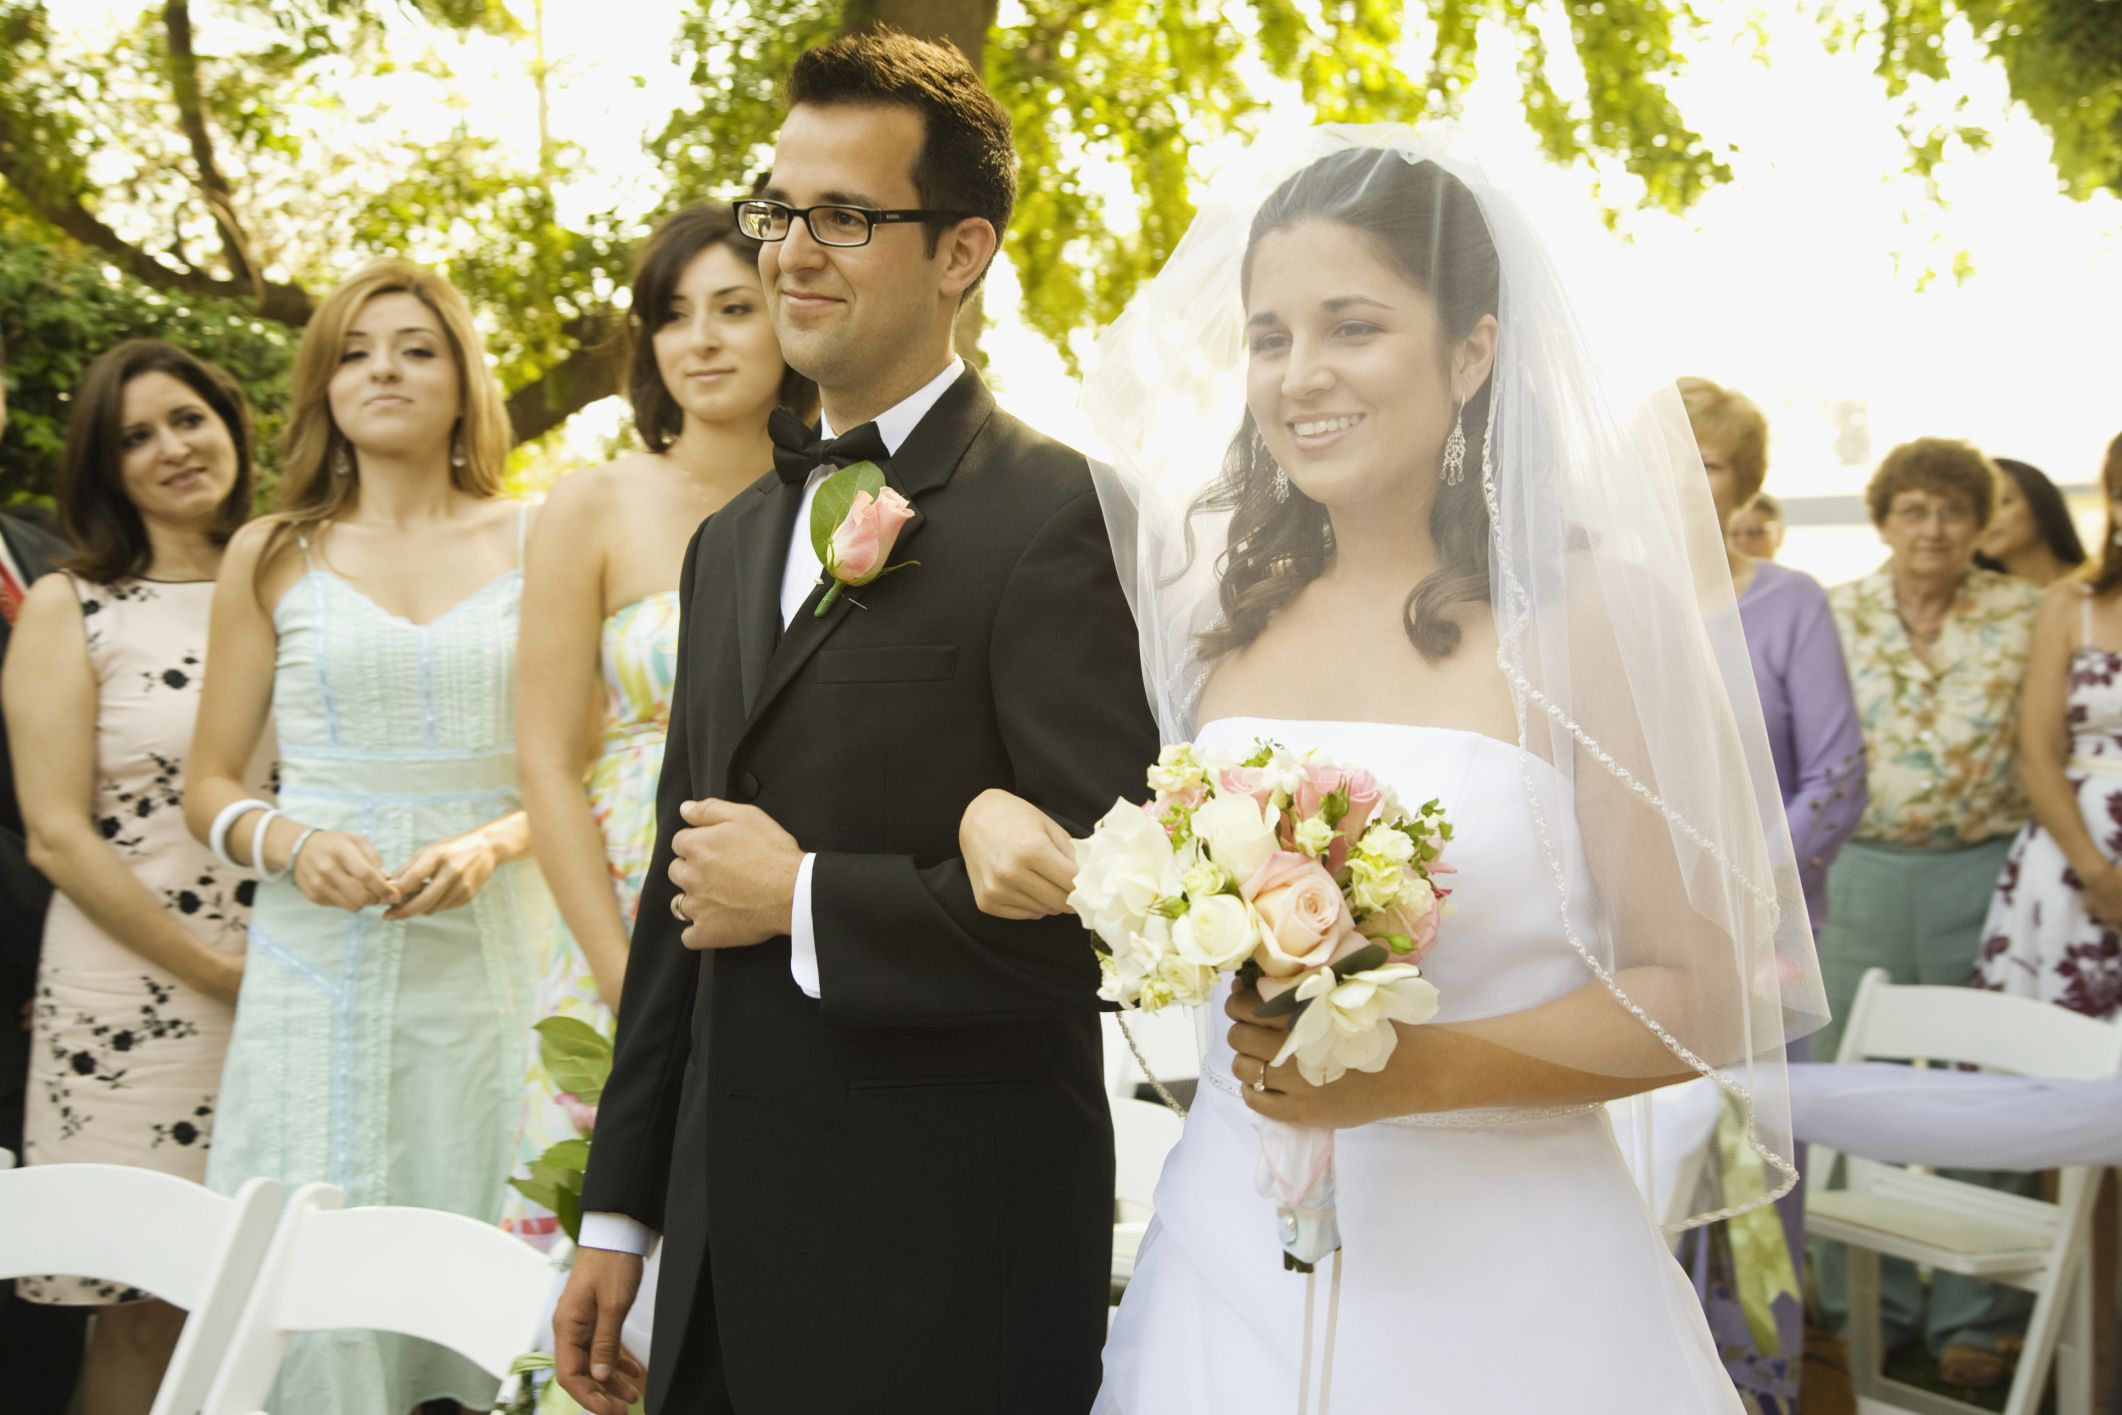 Common wedding ceremony songs to avoid junglespirit Image collections